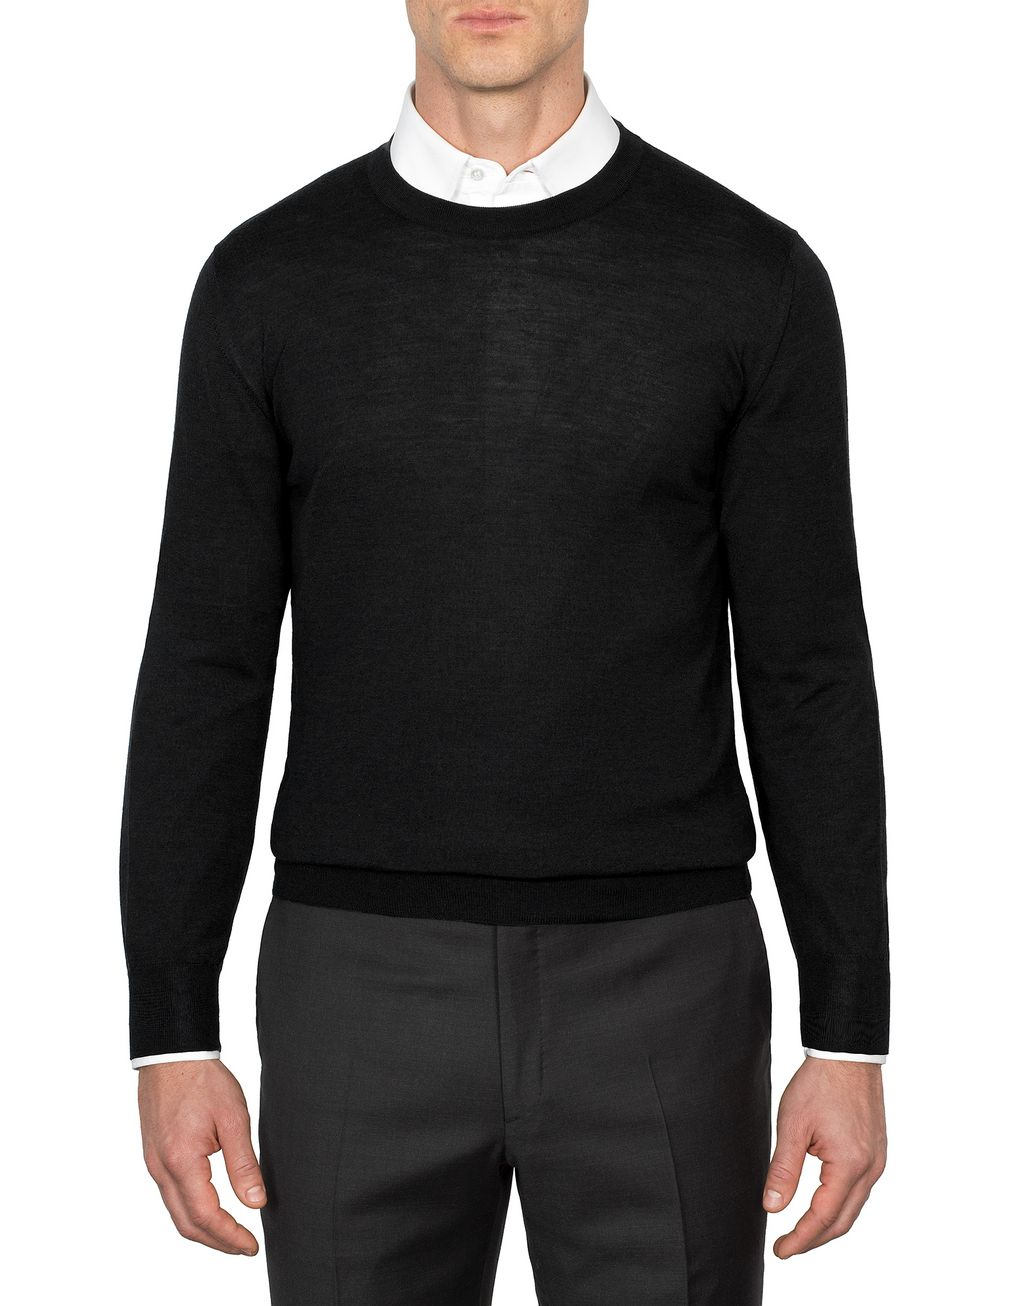 BRIONI 'Essential' Black Crew-Neck Sweater Knitwear [*** pickupInStoreShippingNotGuaranteed_info ***] r